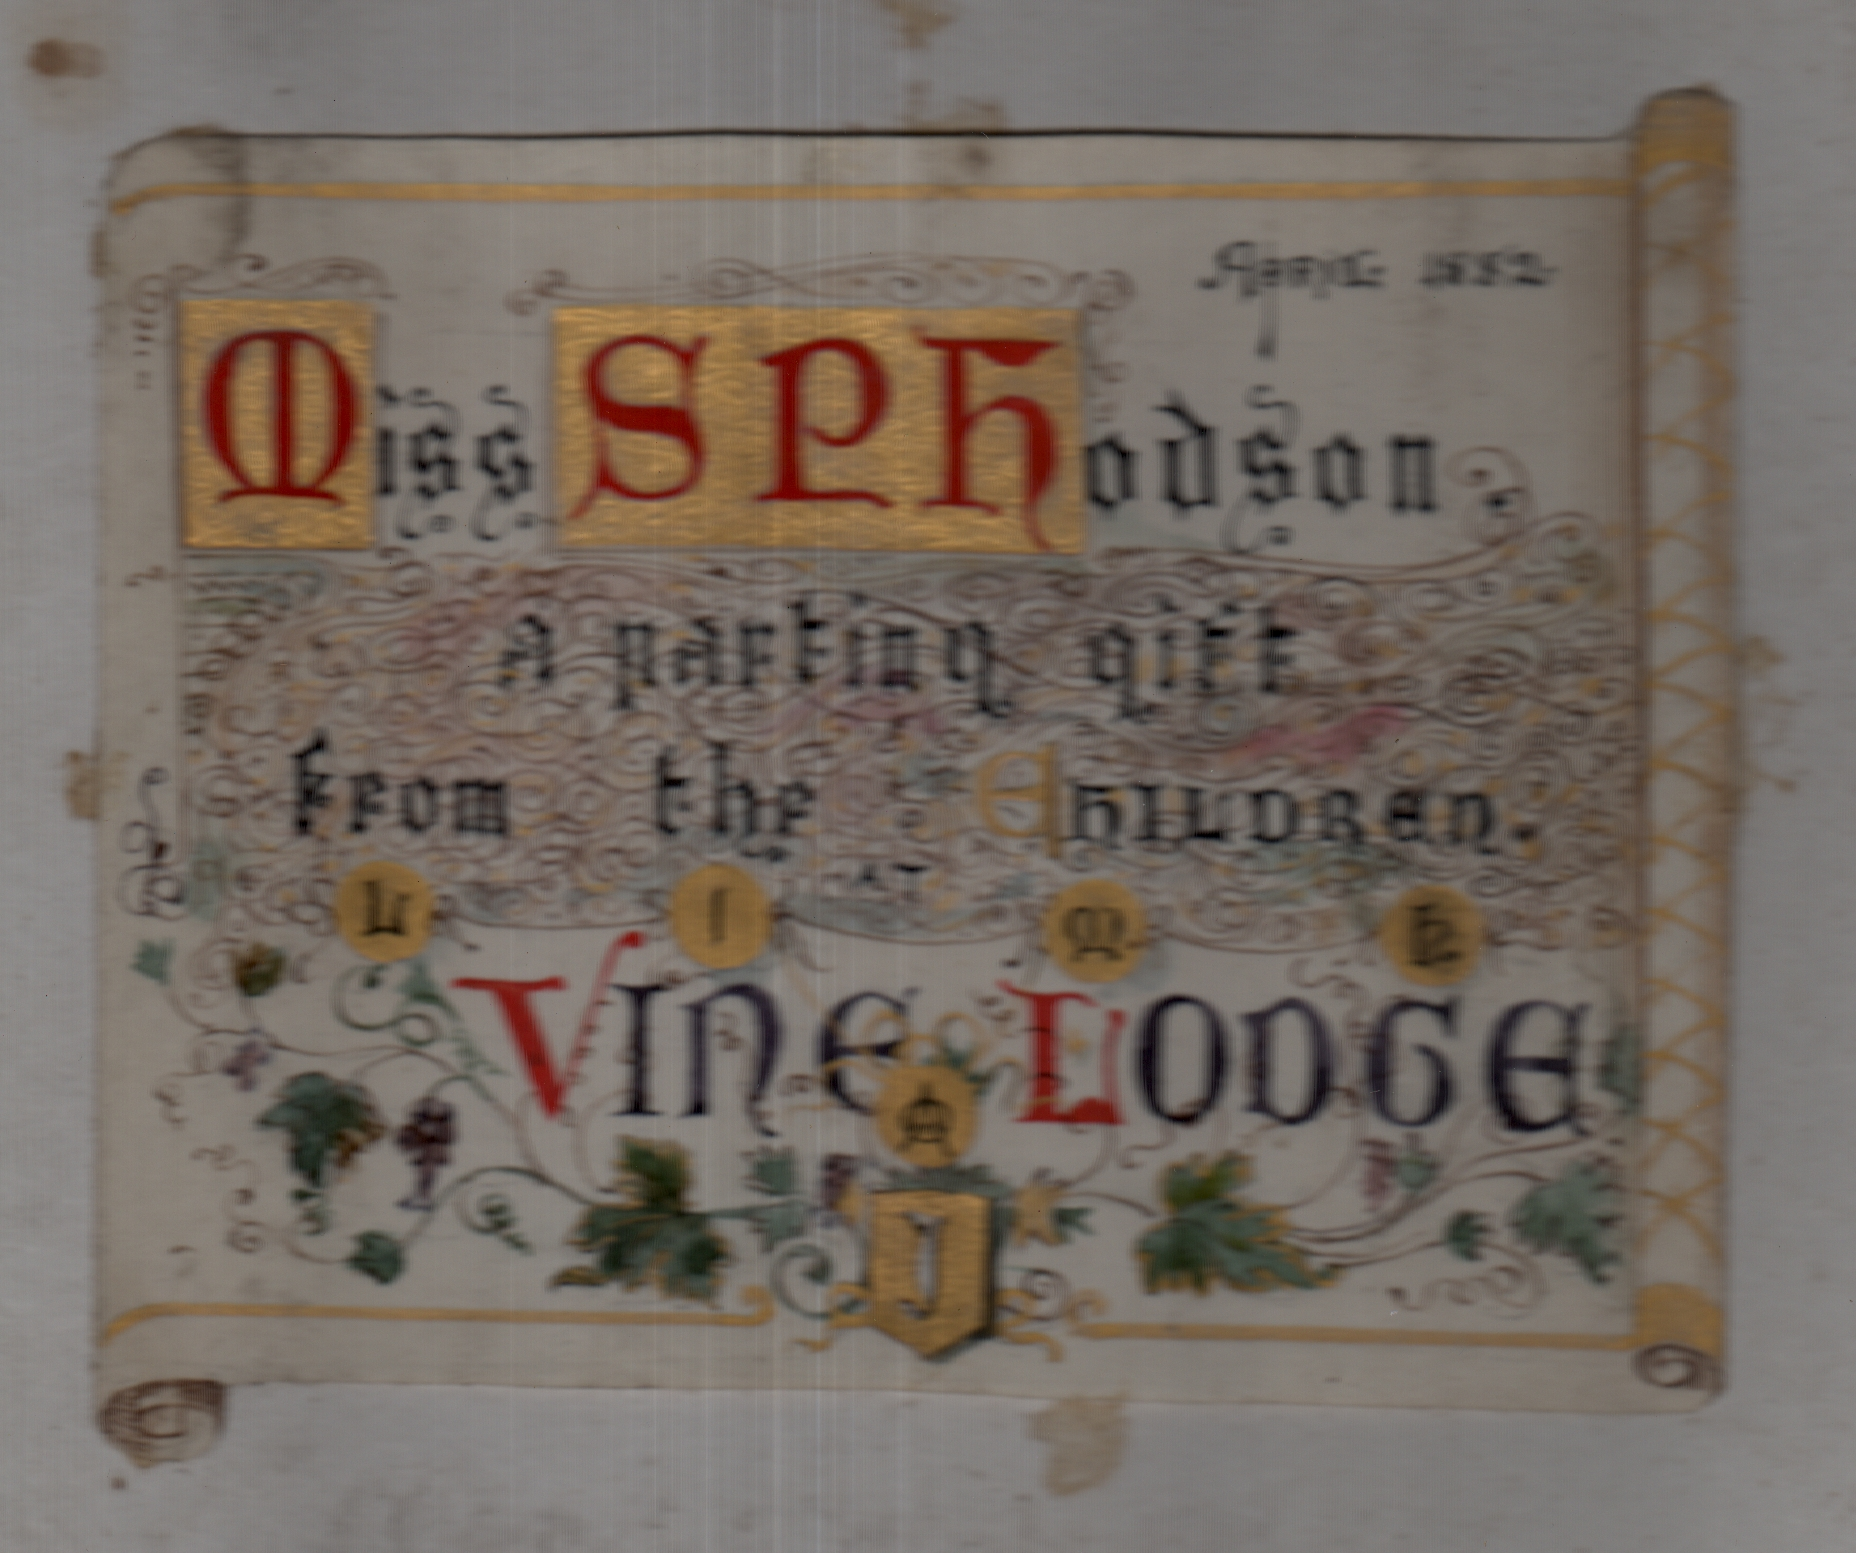 Selina P Hodson 1826-1928 to whom the album was given. Vine Lodge was presambly a school, possibly in the Elsworth area.